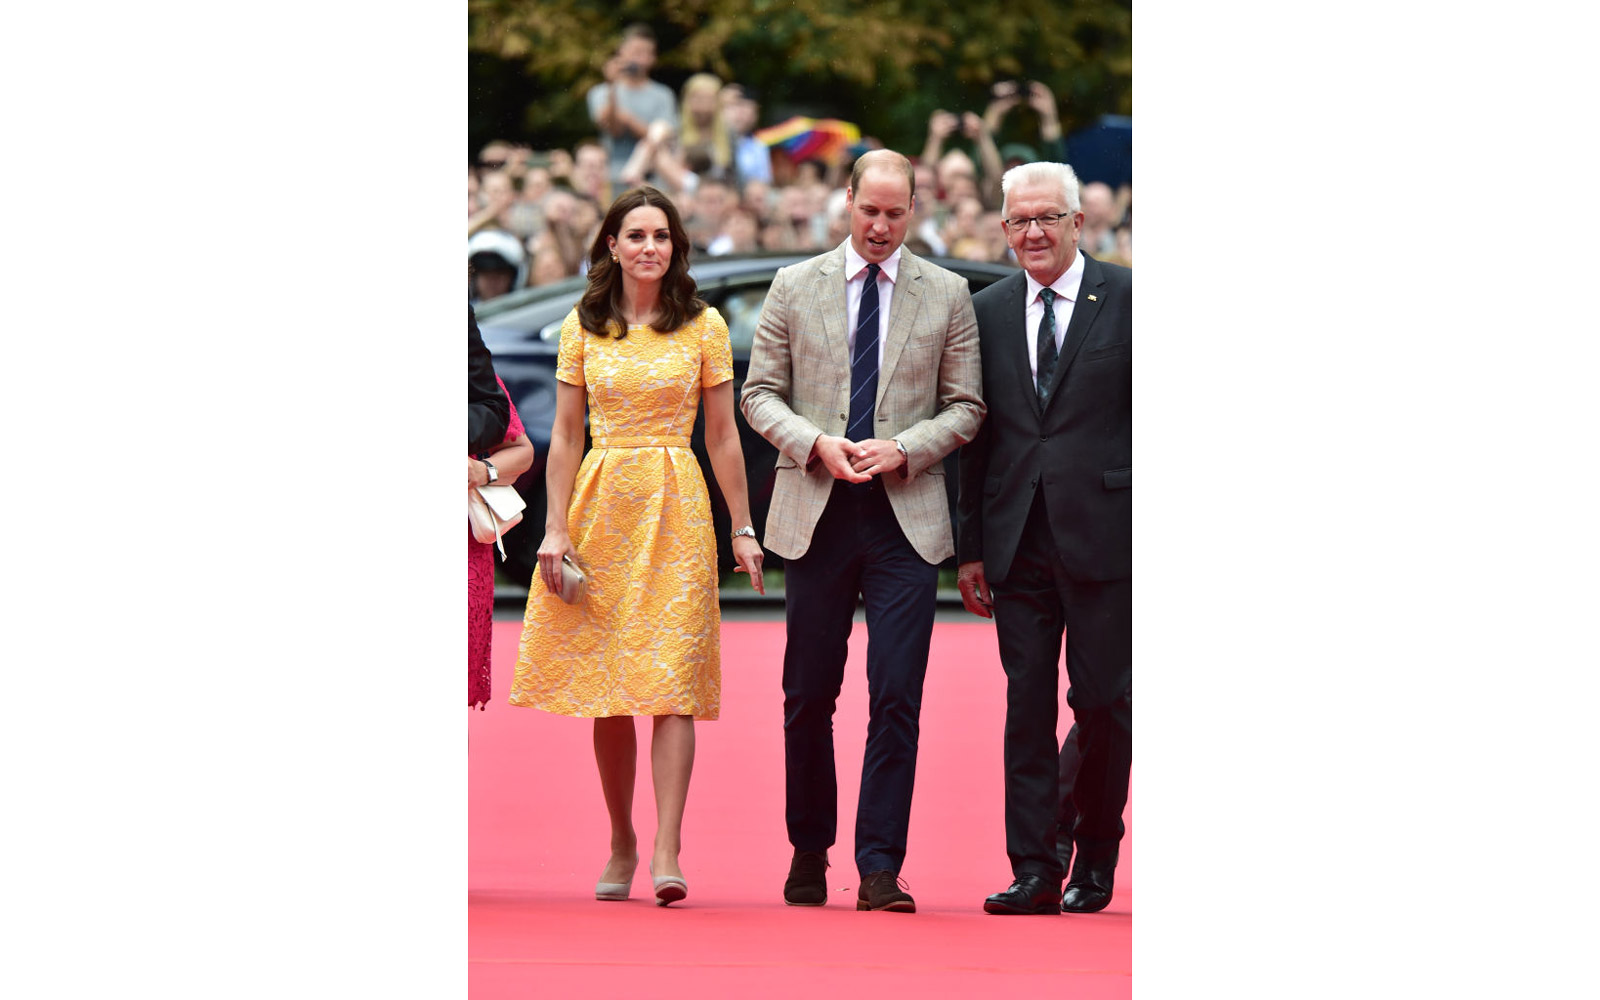 HEIDELBERG, GERMANY - JULY 20:  Prince William, Duke of Cambridge and Catherine, Duchess of Cambridge arrive for a visit to the German Cancer Research Institute on day 2 of their official visit to Germany on July 20, 2017 in Heidelberg, Germany. (Photo by